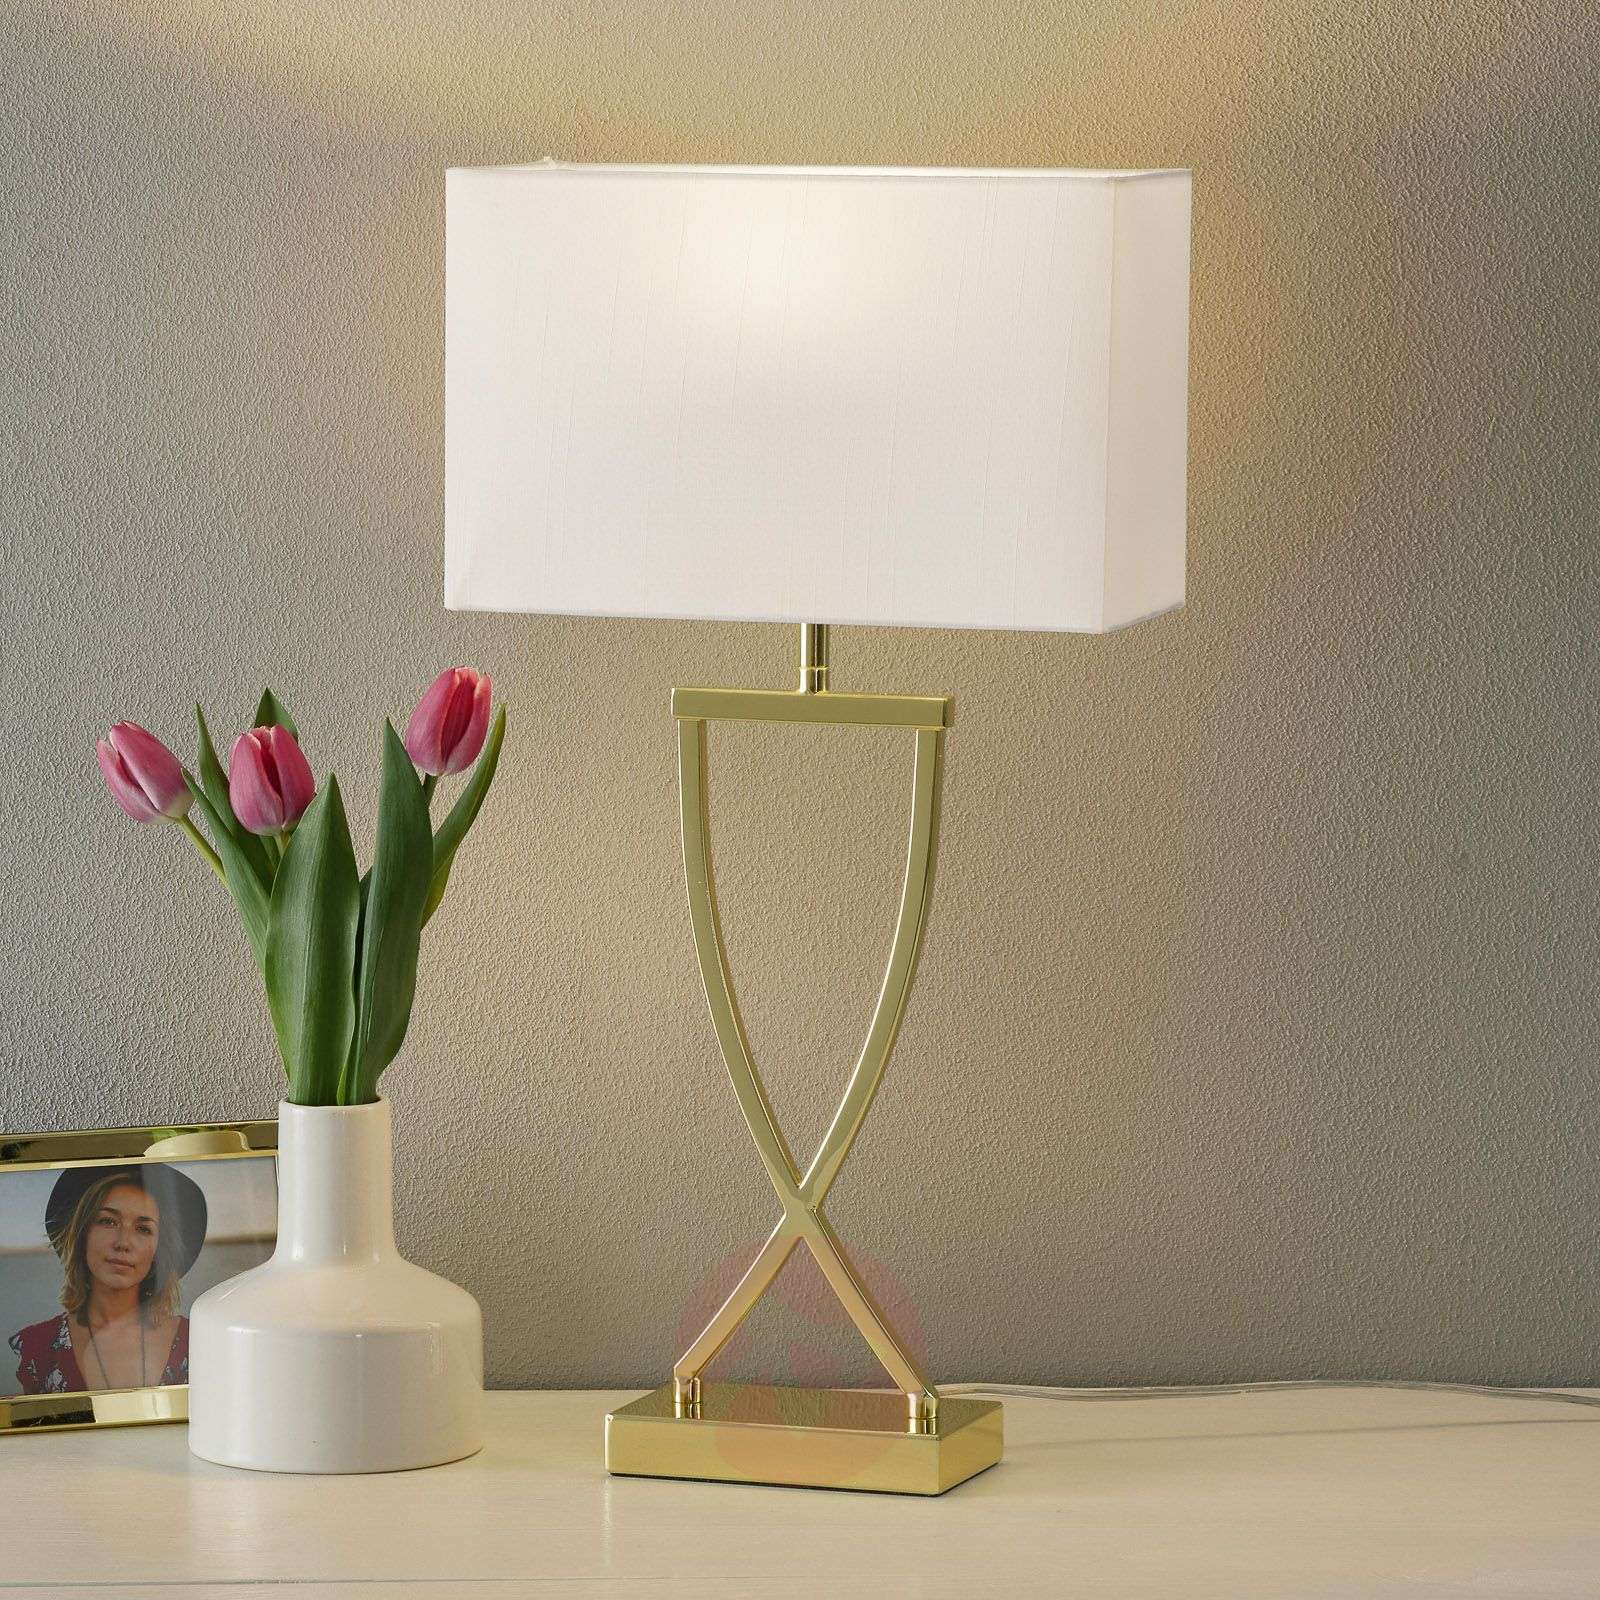 Enchanting fabric table lamp Anni brass-white-4581010-01